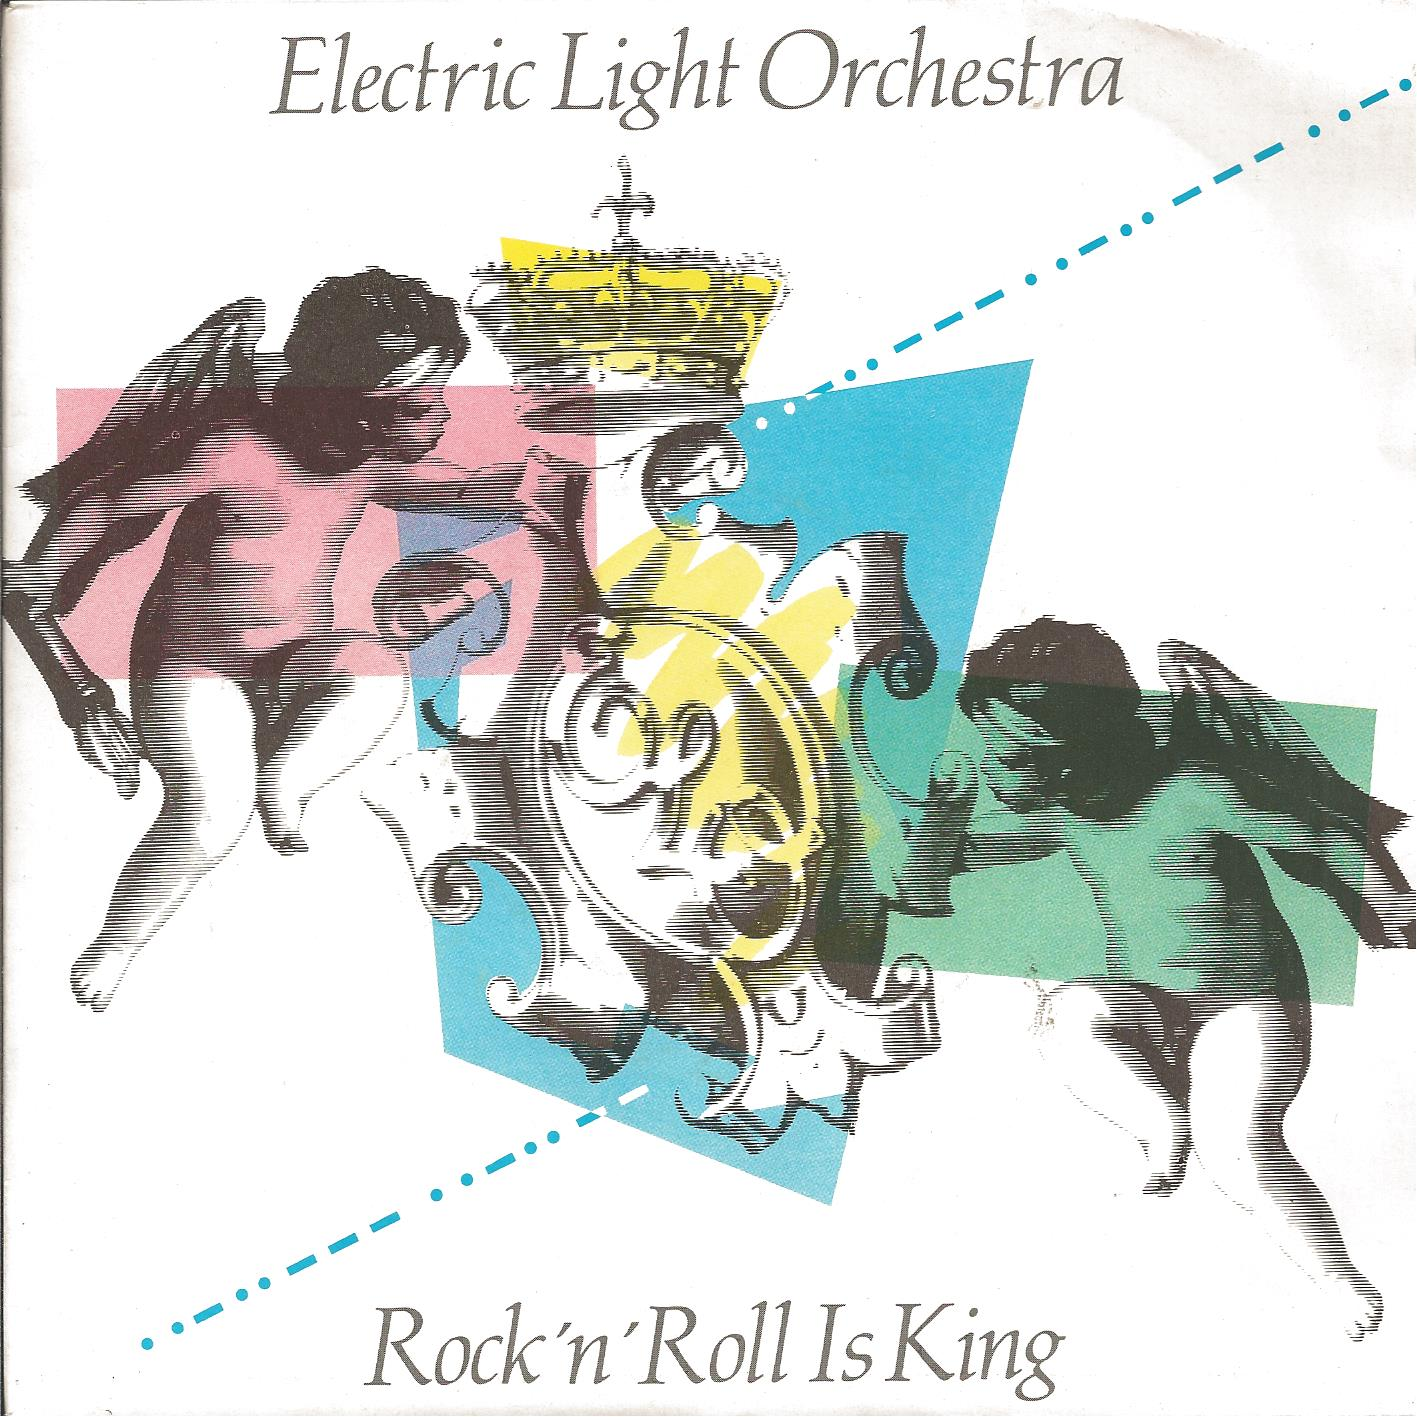 Rock'n'roll is king / After all